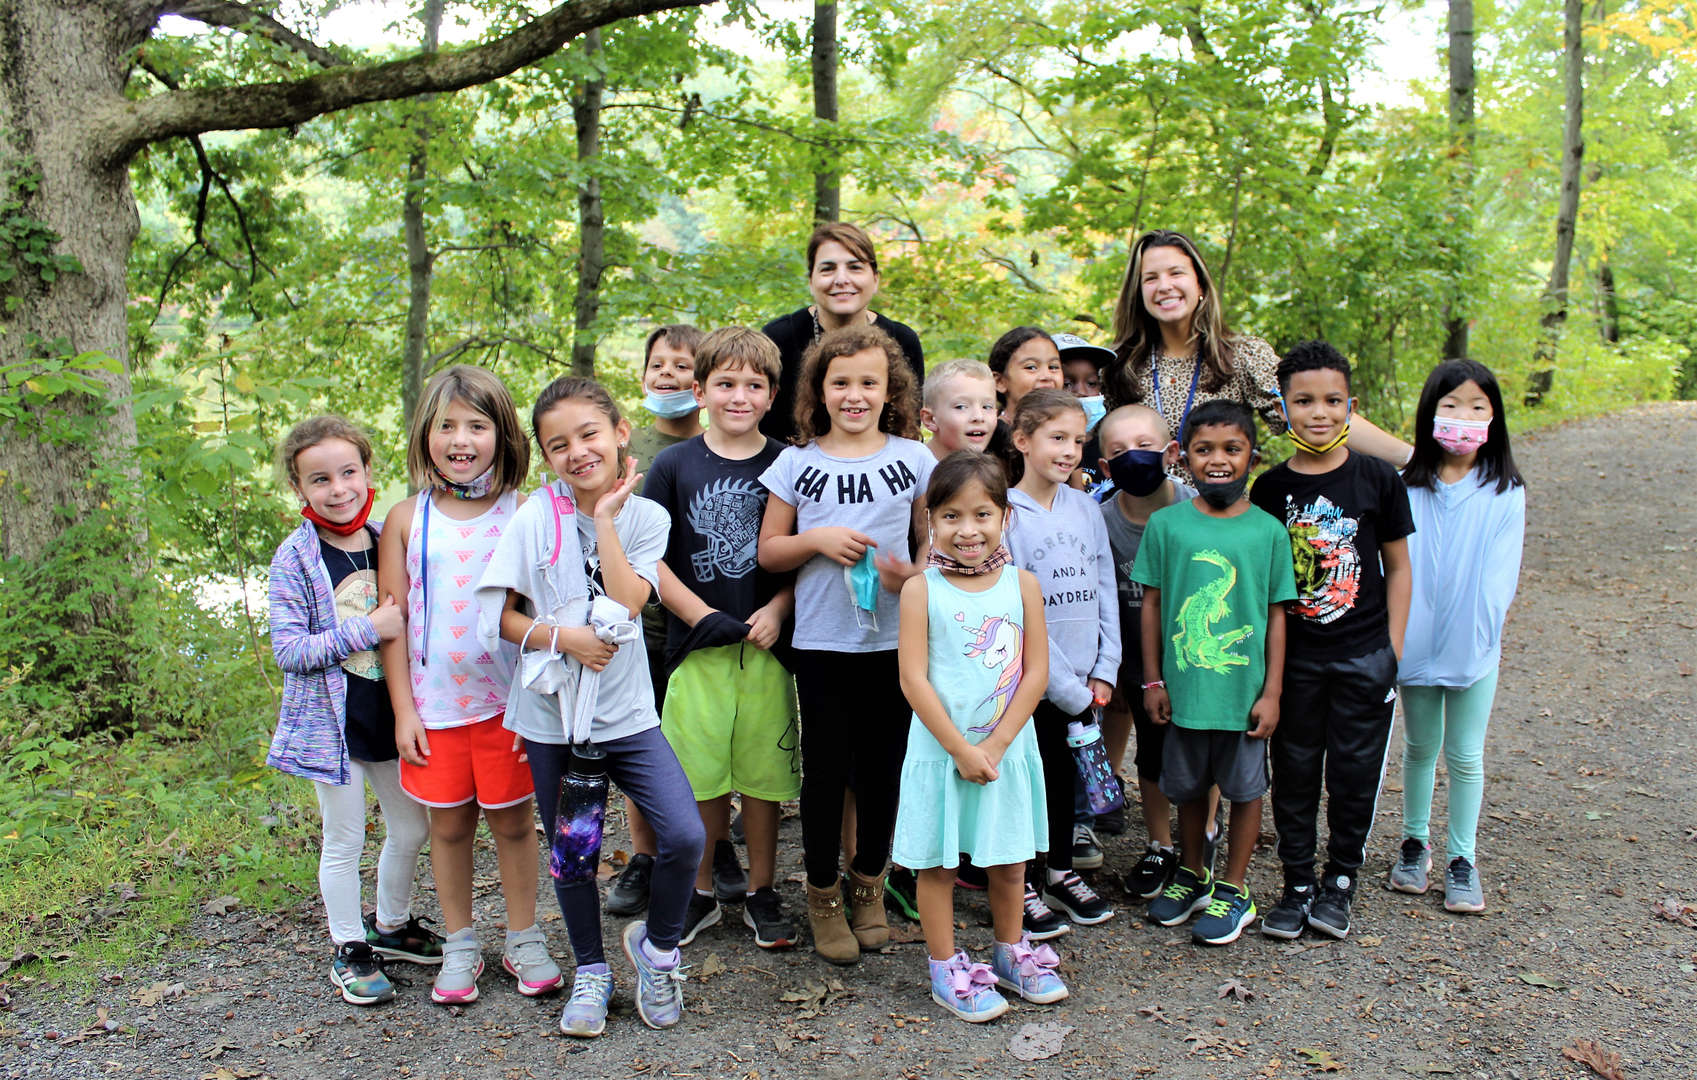 A Pocantico Hills class ends the hike with a group photo.